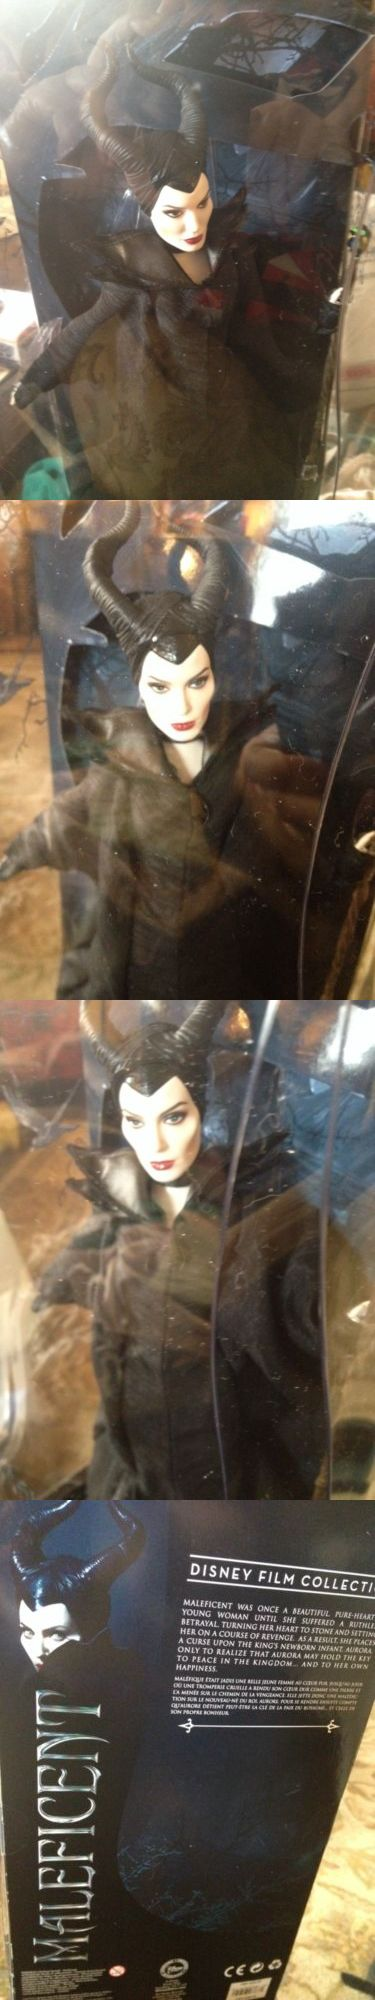 Disney Villains 166789: Disney Maleficent 2014 Movie (Angelina Jolie) 12 Collector Doll - Nib -> BUY IT NOW ONLY: $99.95 on eBay!